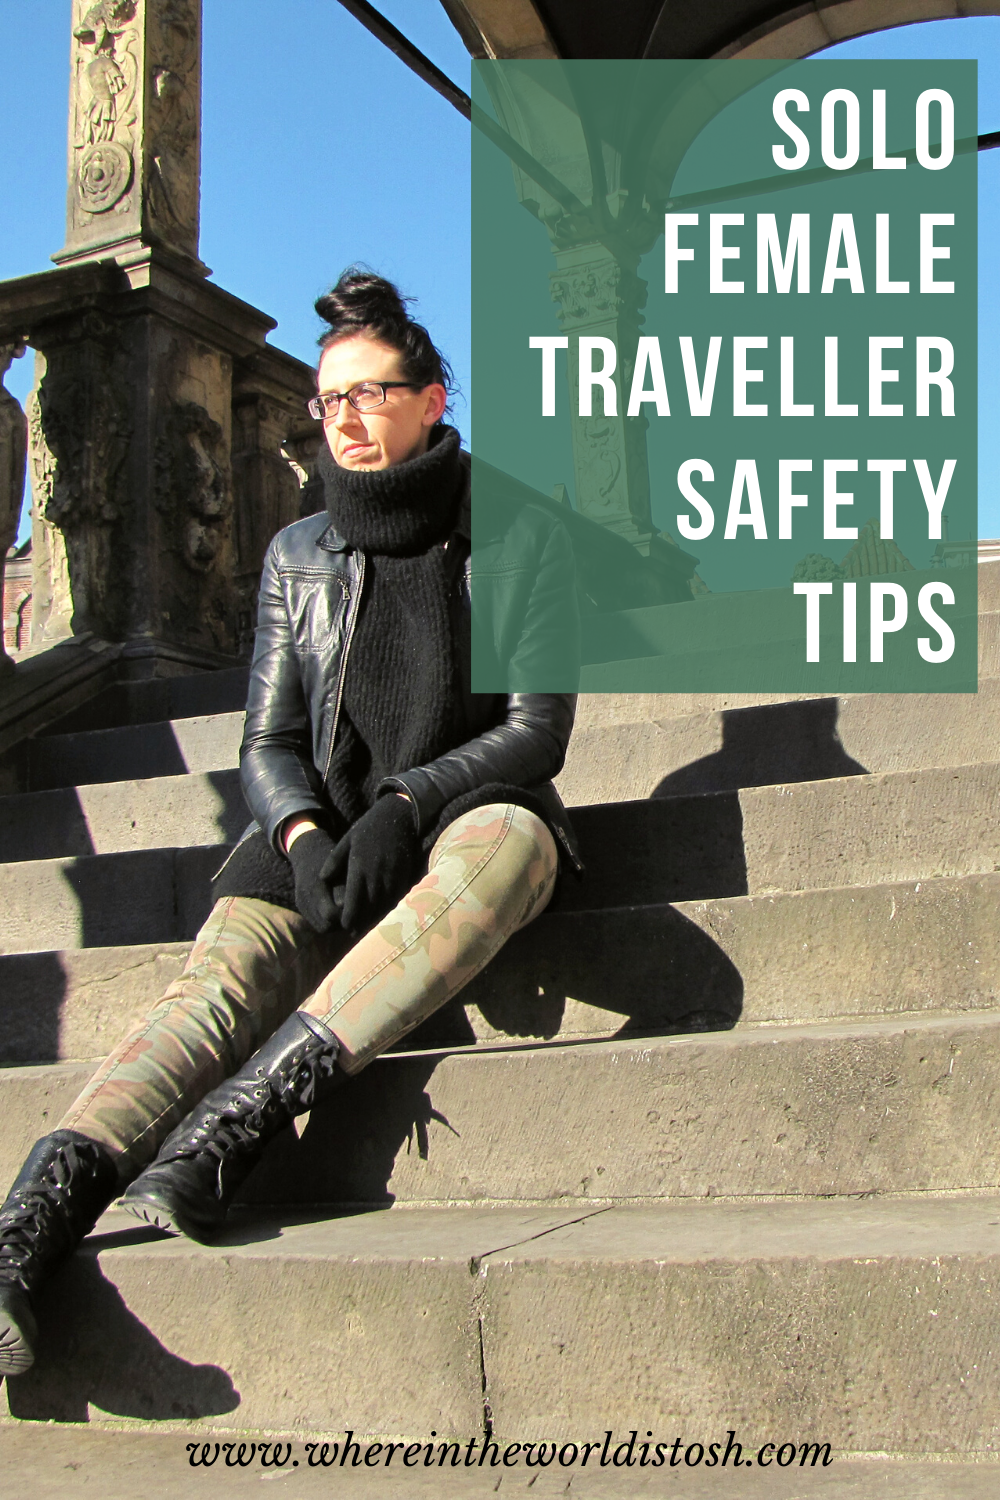 Solo Female Traveller Safety Tips